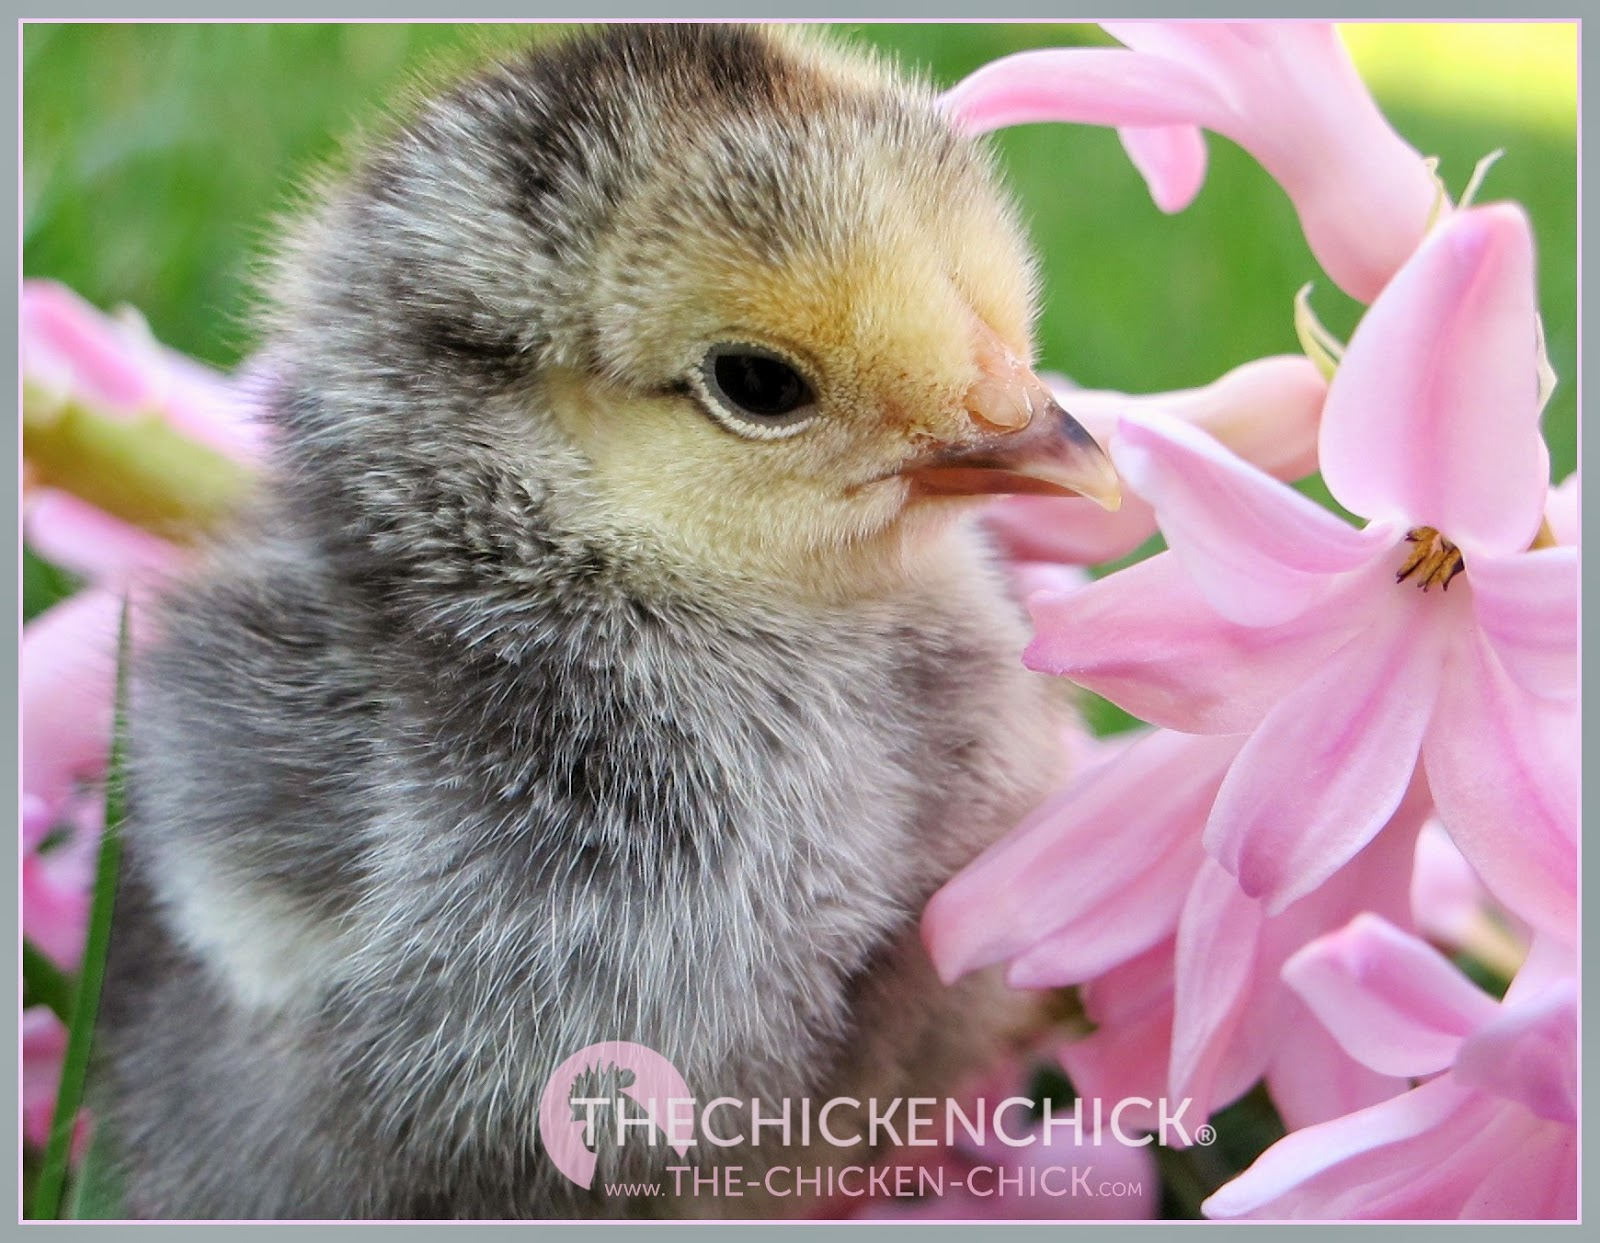 Chick picking Causes Prevention & Solutions via The Chicken Chick®